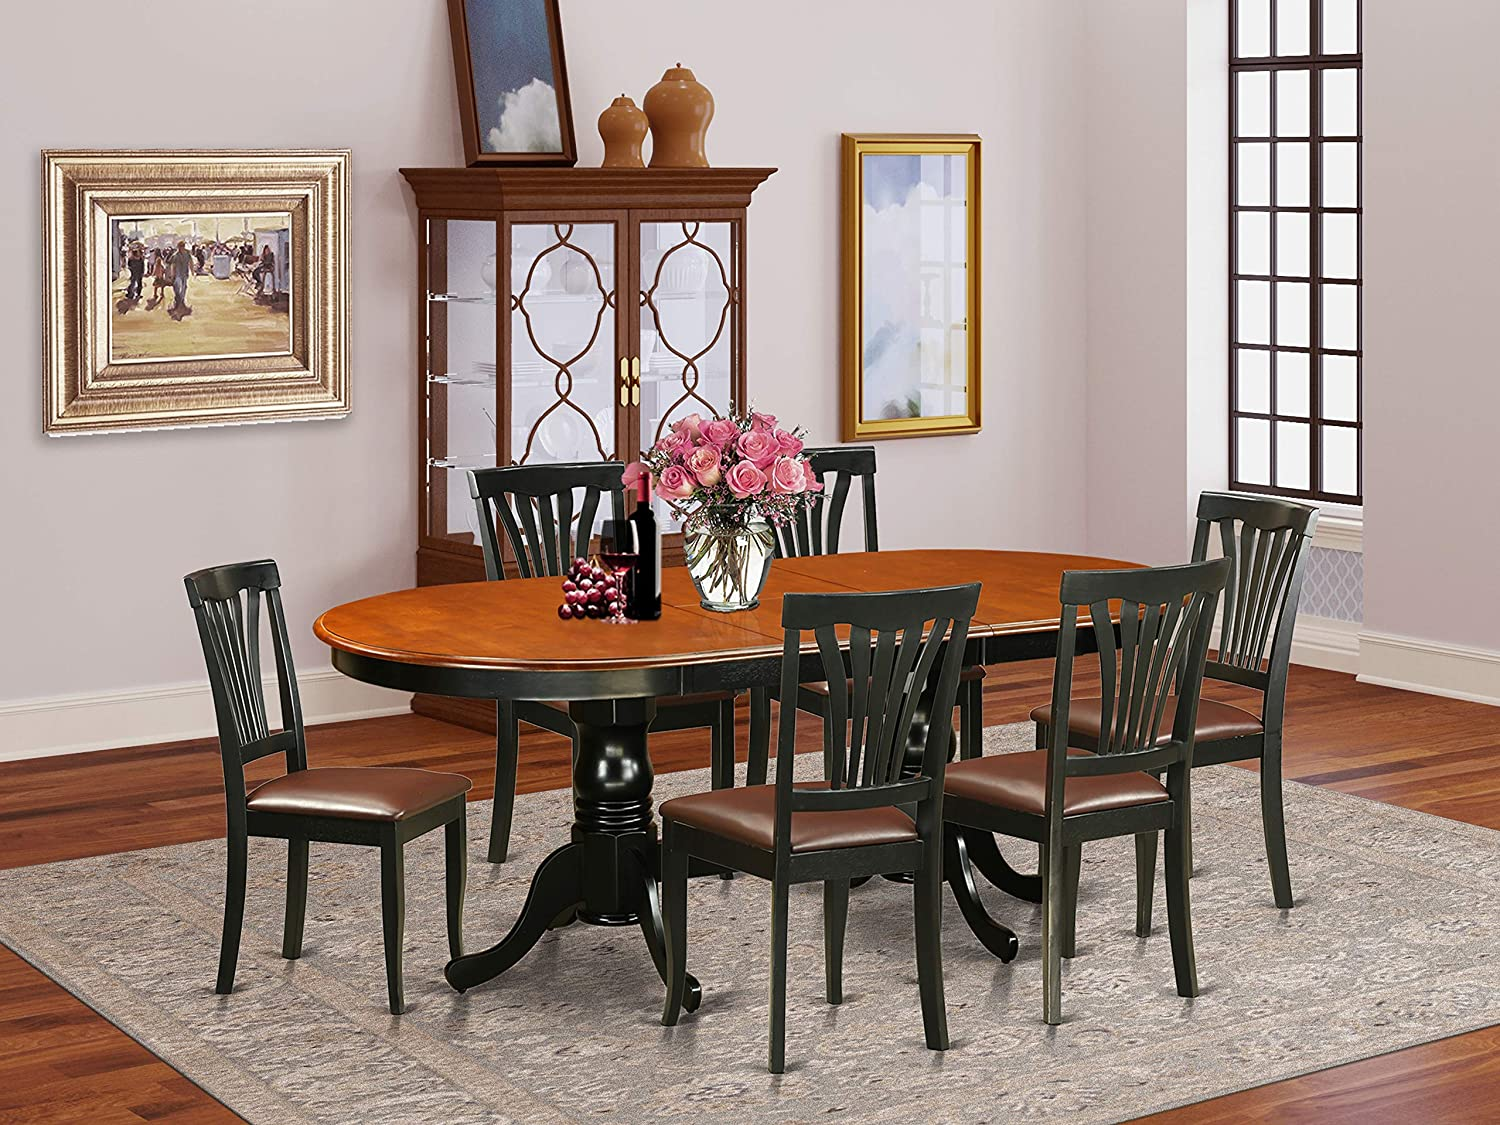 9 Pc Dining room set Dining Table with 9 Wooden Dining Chairs